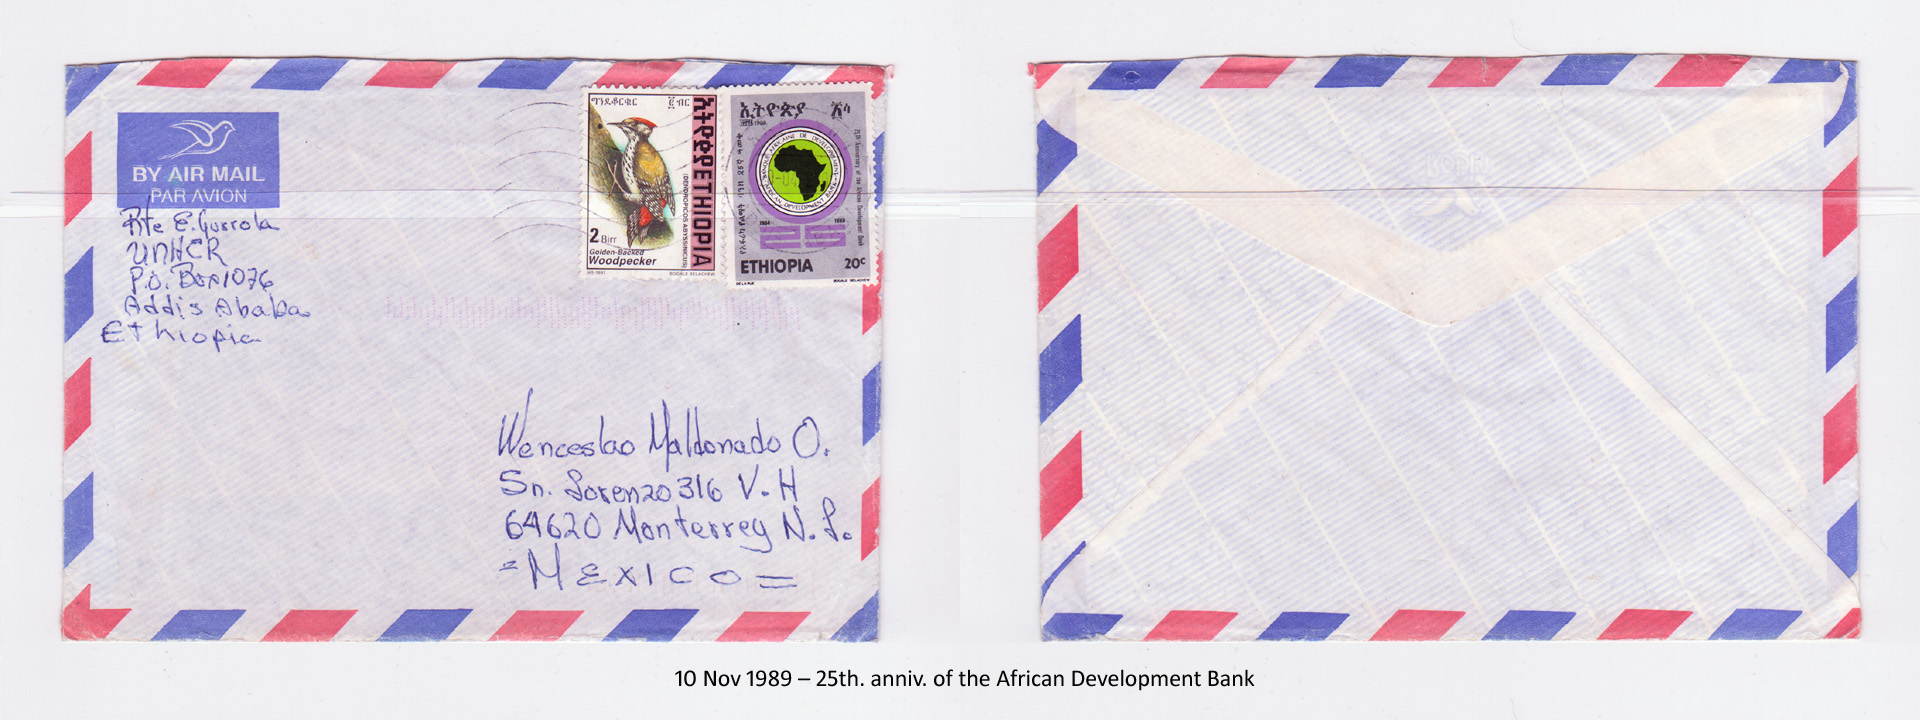 19891110 – 25th. anniv. of the African Development Bank